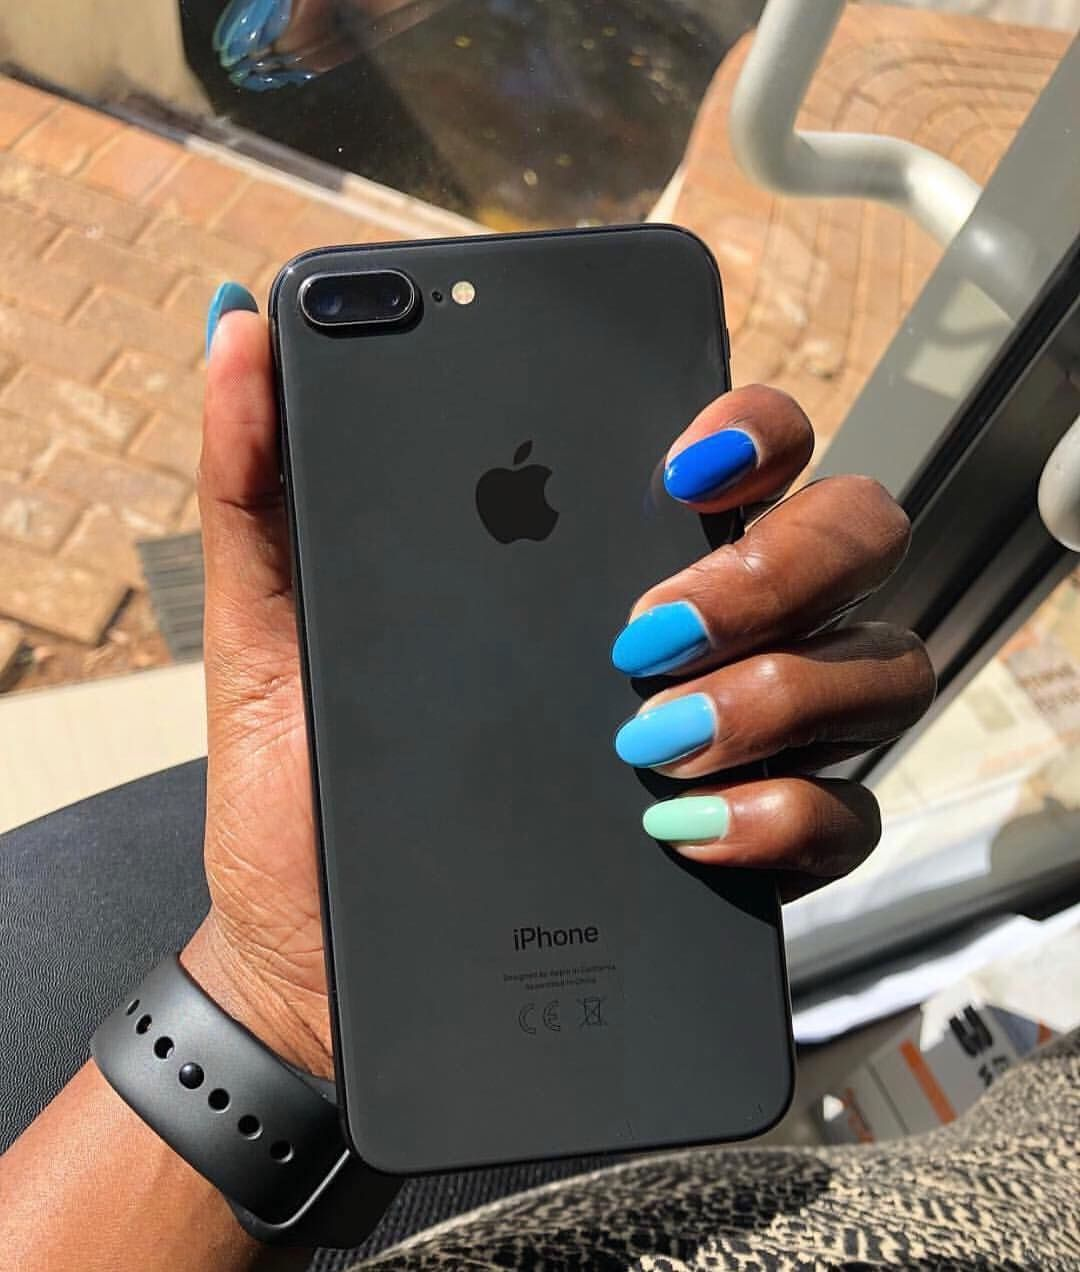 cheap for discount 2272d e0ffa iPhone 8 Plus Spacegrey🔥 Do you love it❓ Comment down below ...